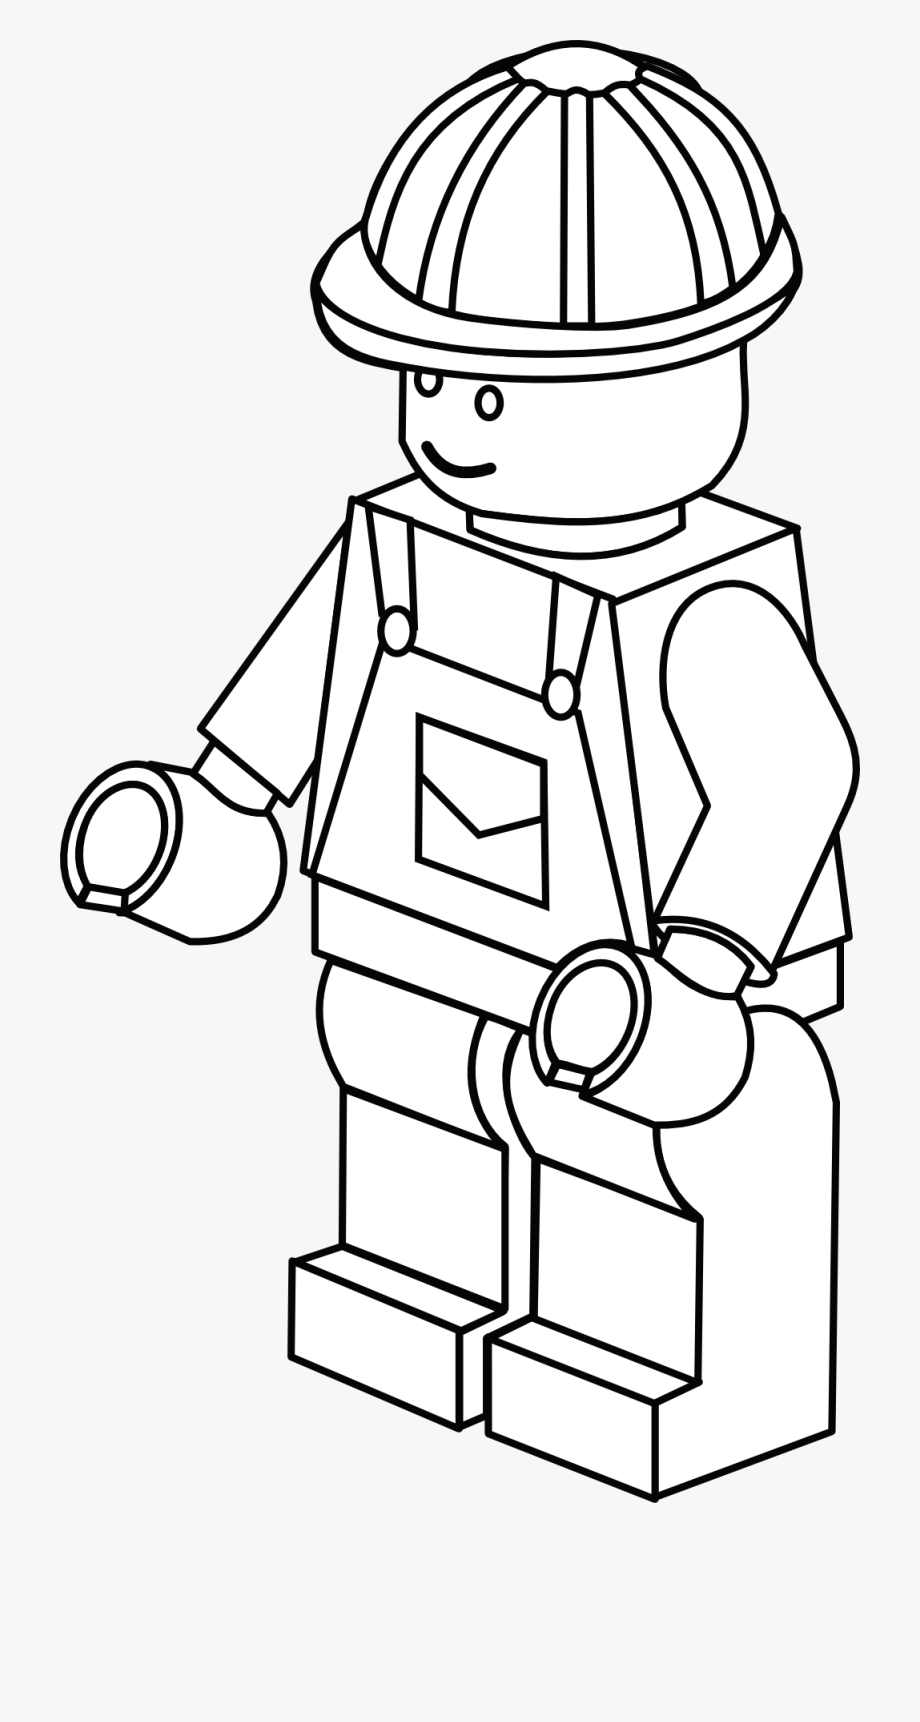 lego pokemon coloring pages lego coloring pages transparent cartoon free cliparts pokemon coloring pages lego